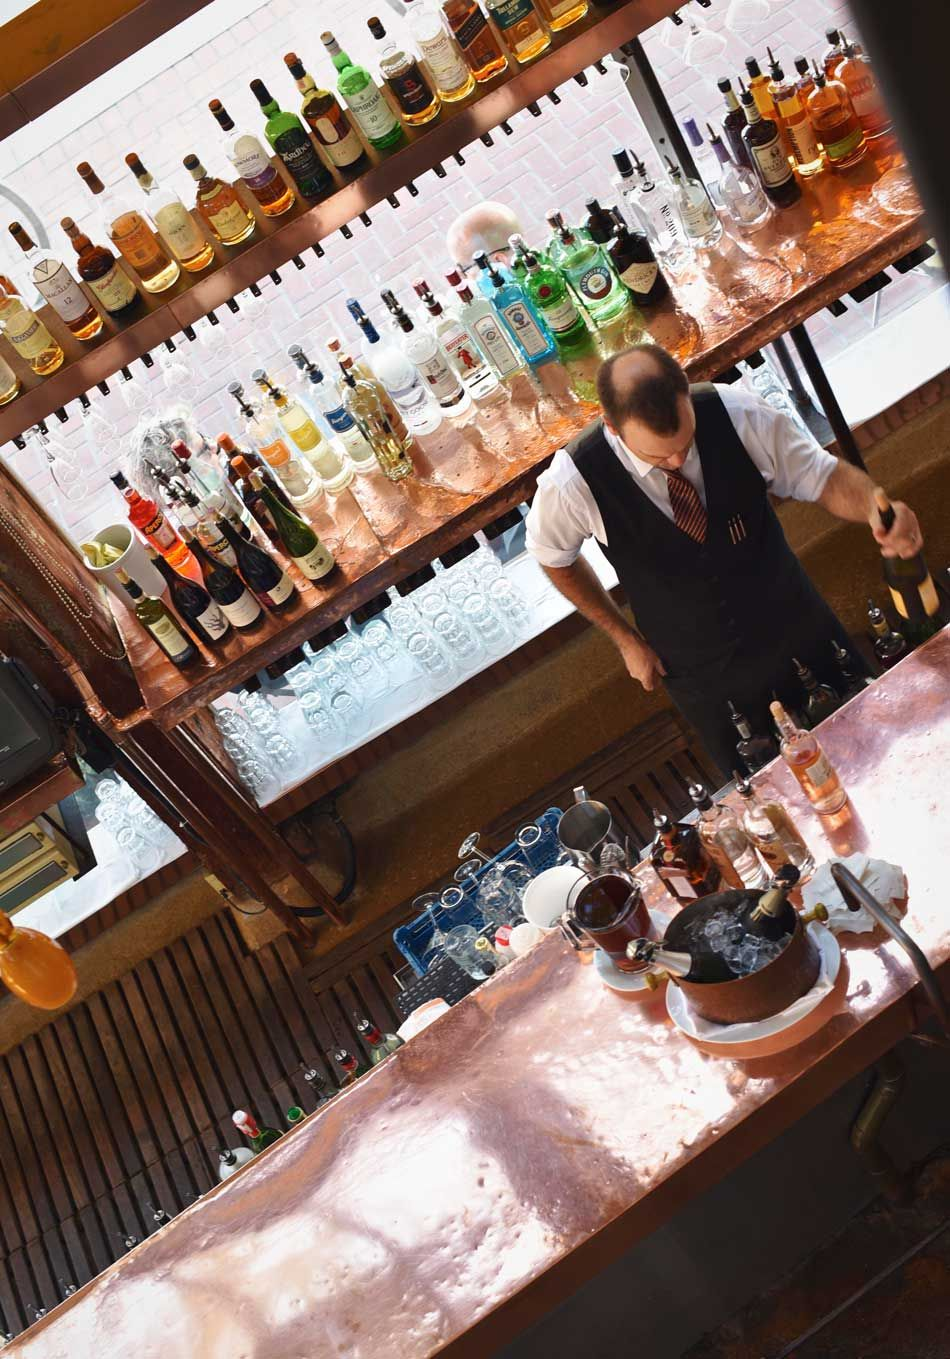 The bar is a colorful spotlight that passersby on